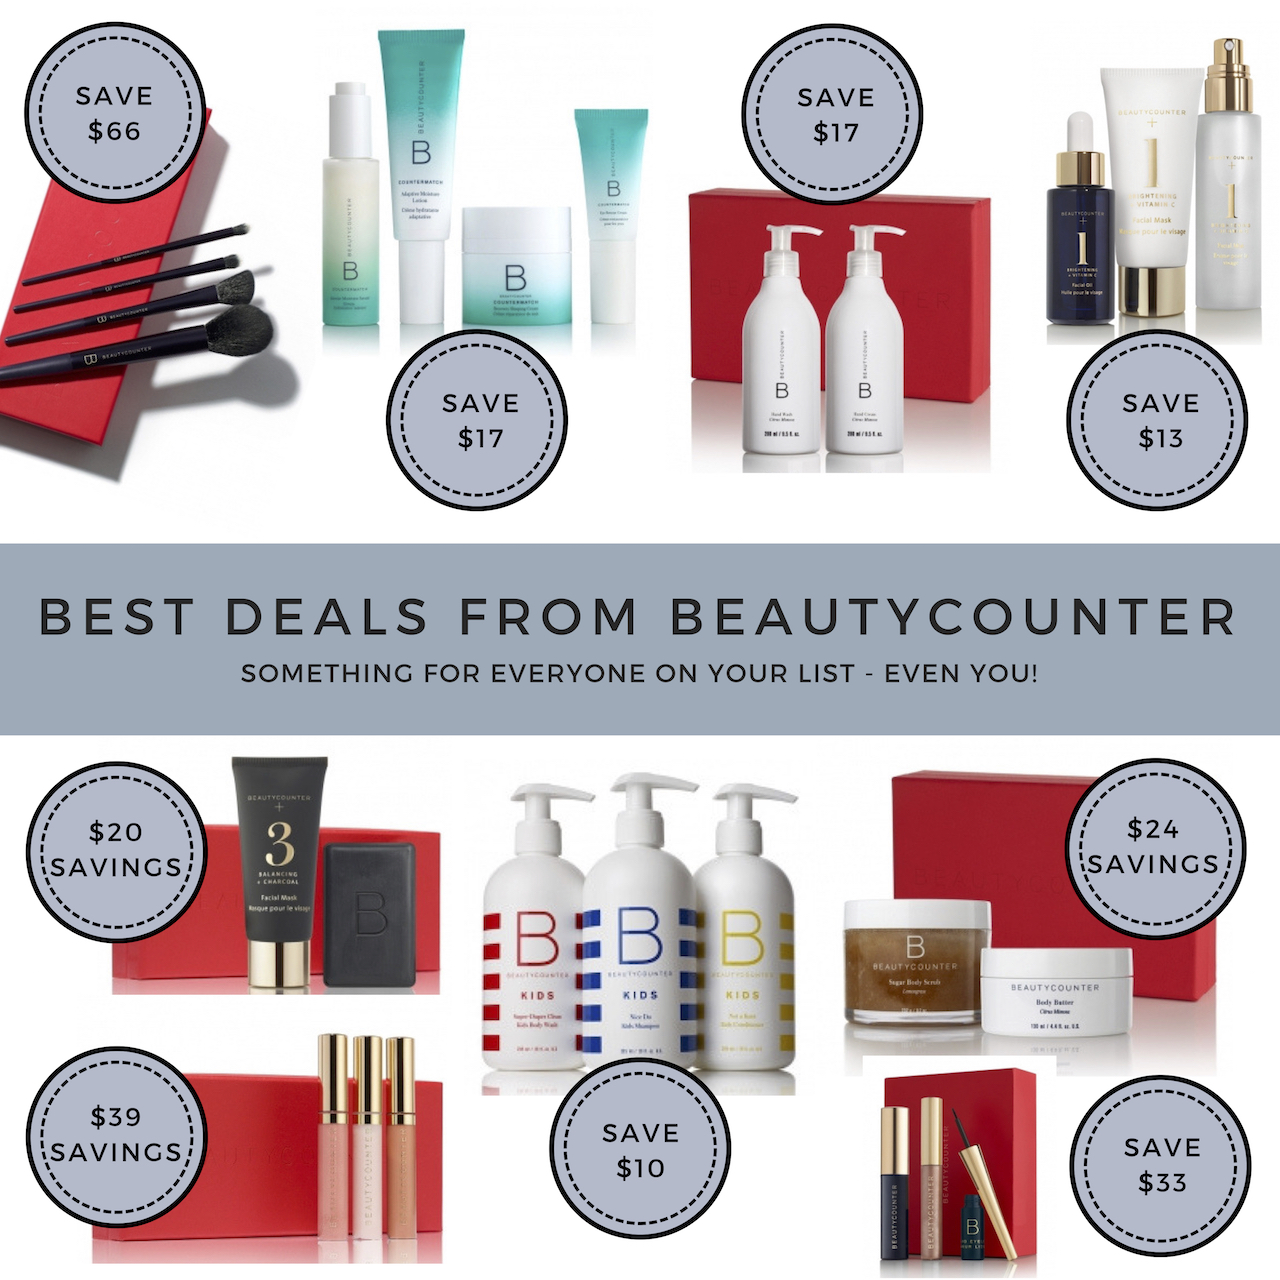 BEST DEALS FROM BEAUTYCOUNTER